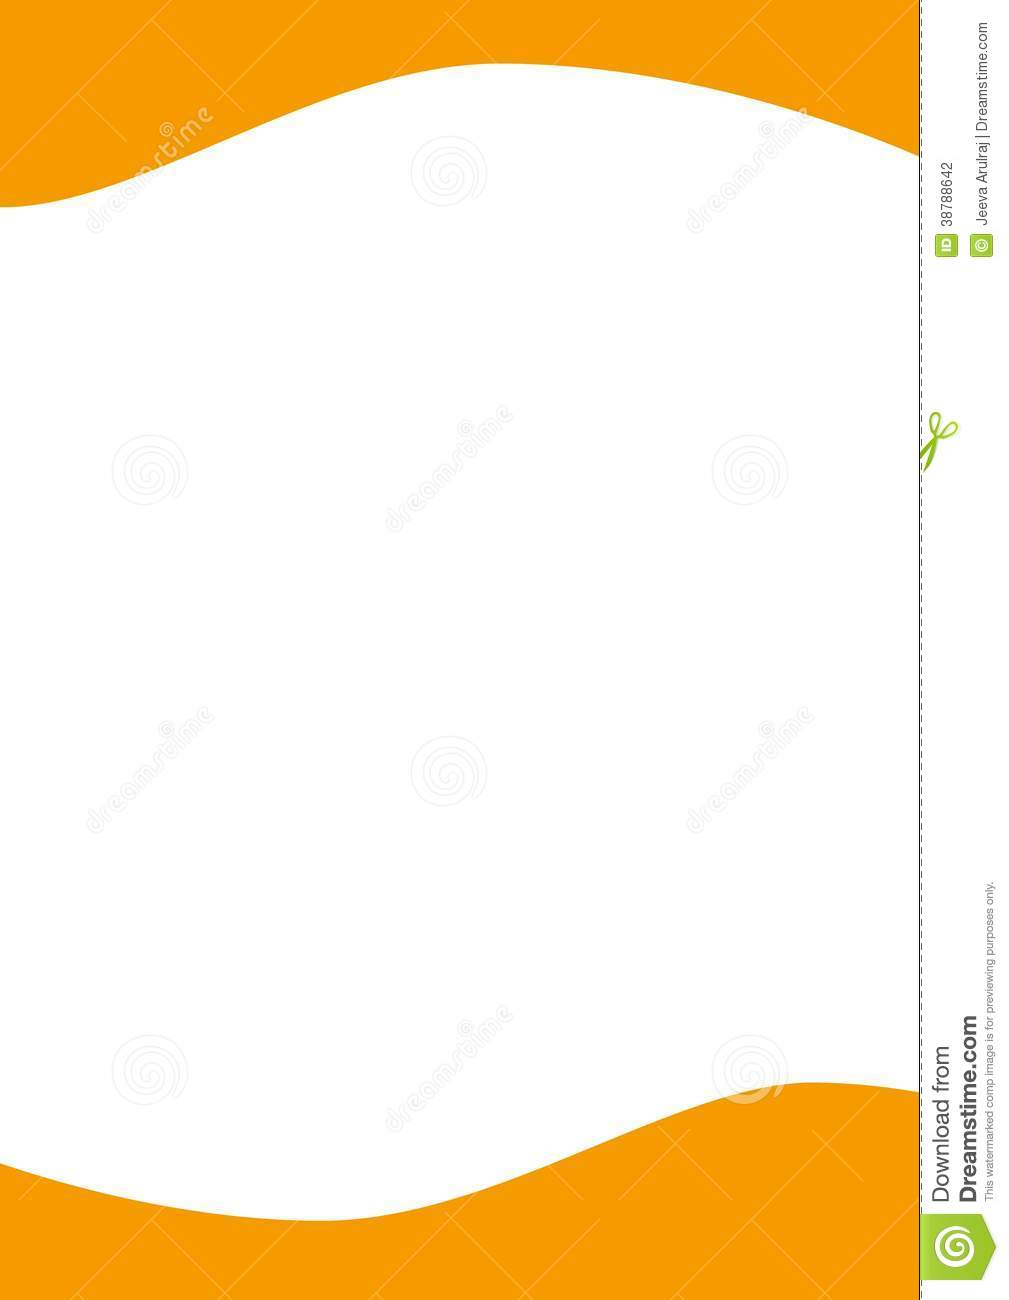 Letterhead is used for official letter for a company.